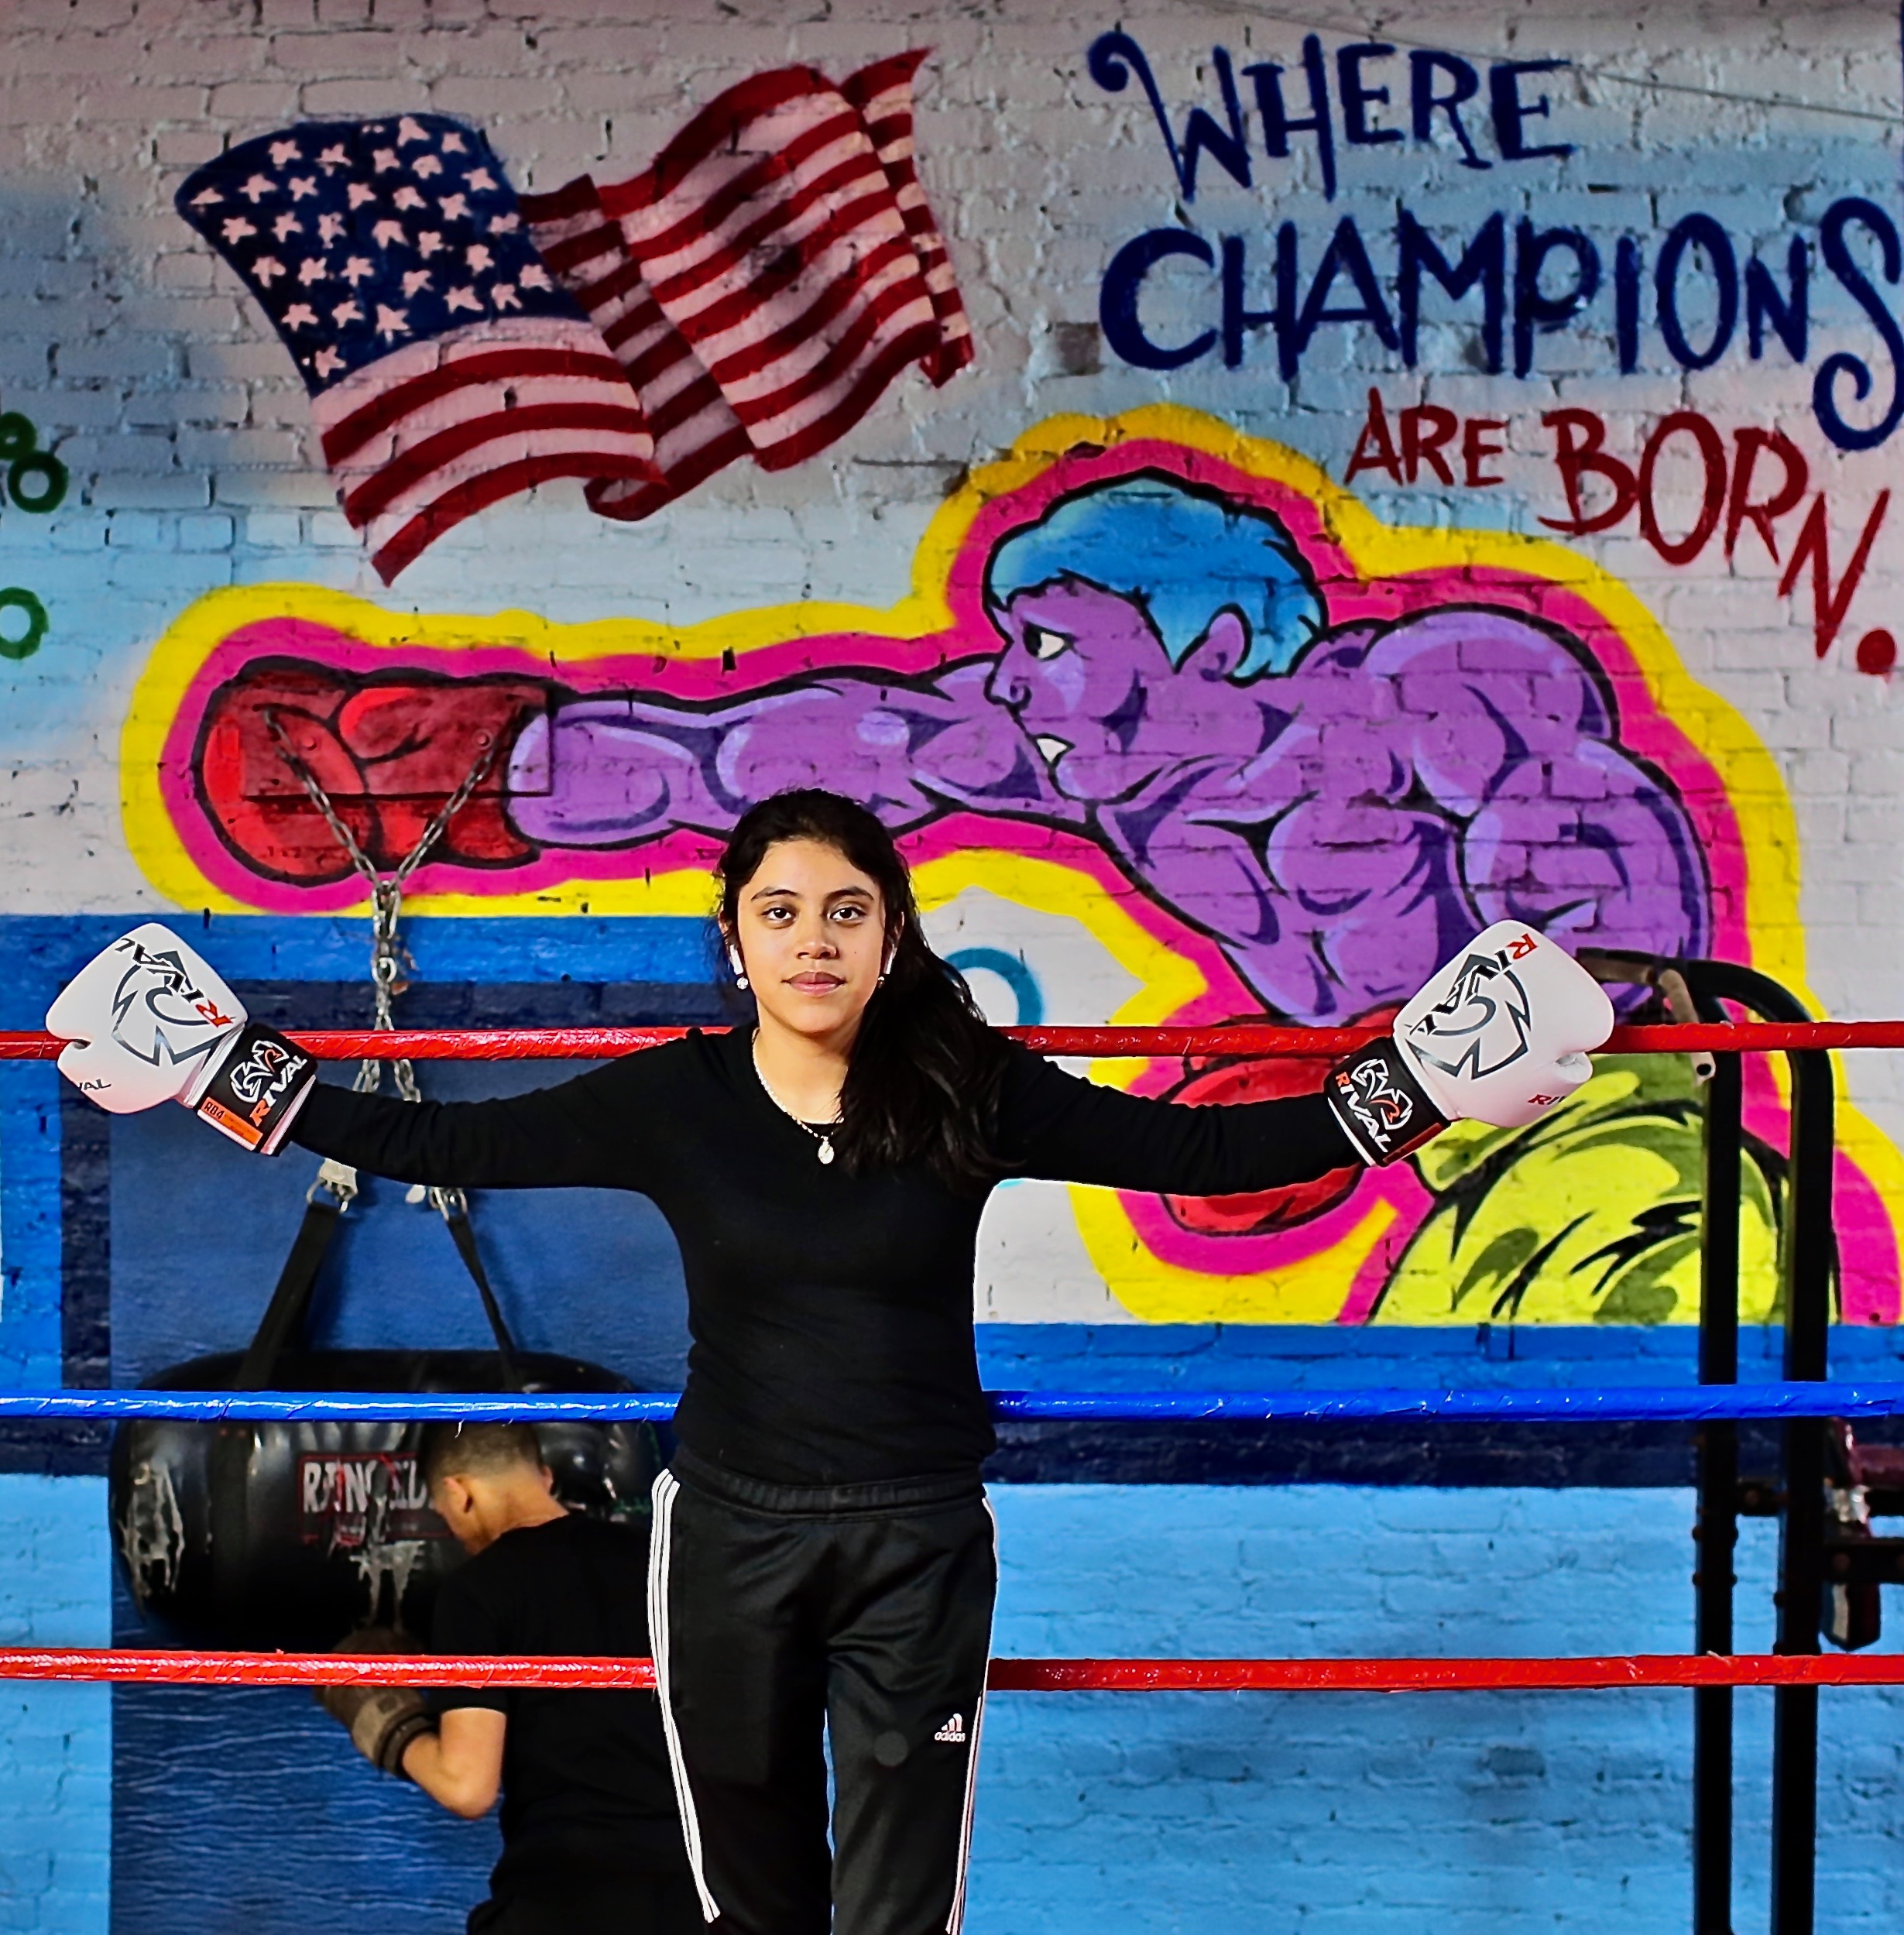 Adelyne (18 Year Old Boxer) 2020, Jerome Avenue, The Bronx, NYC. Wednesday, January 22, 2020. 7:02 PM (38 degrees). © Ruben Natal-San Miguel. Courtesy of Ruben Natal-San Miguel & Postmasters Gallery.